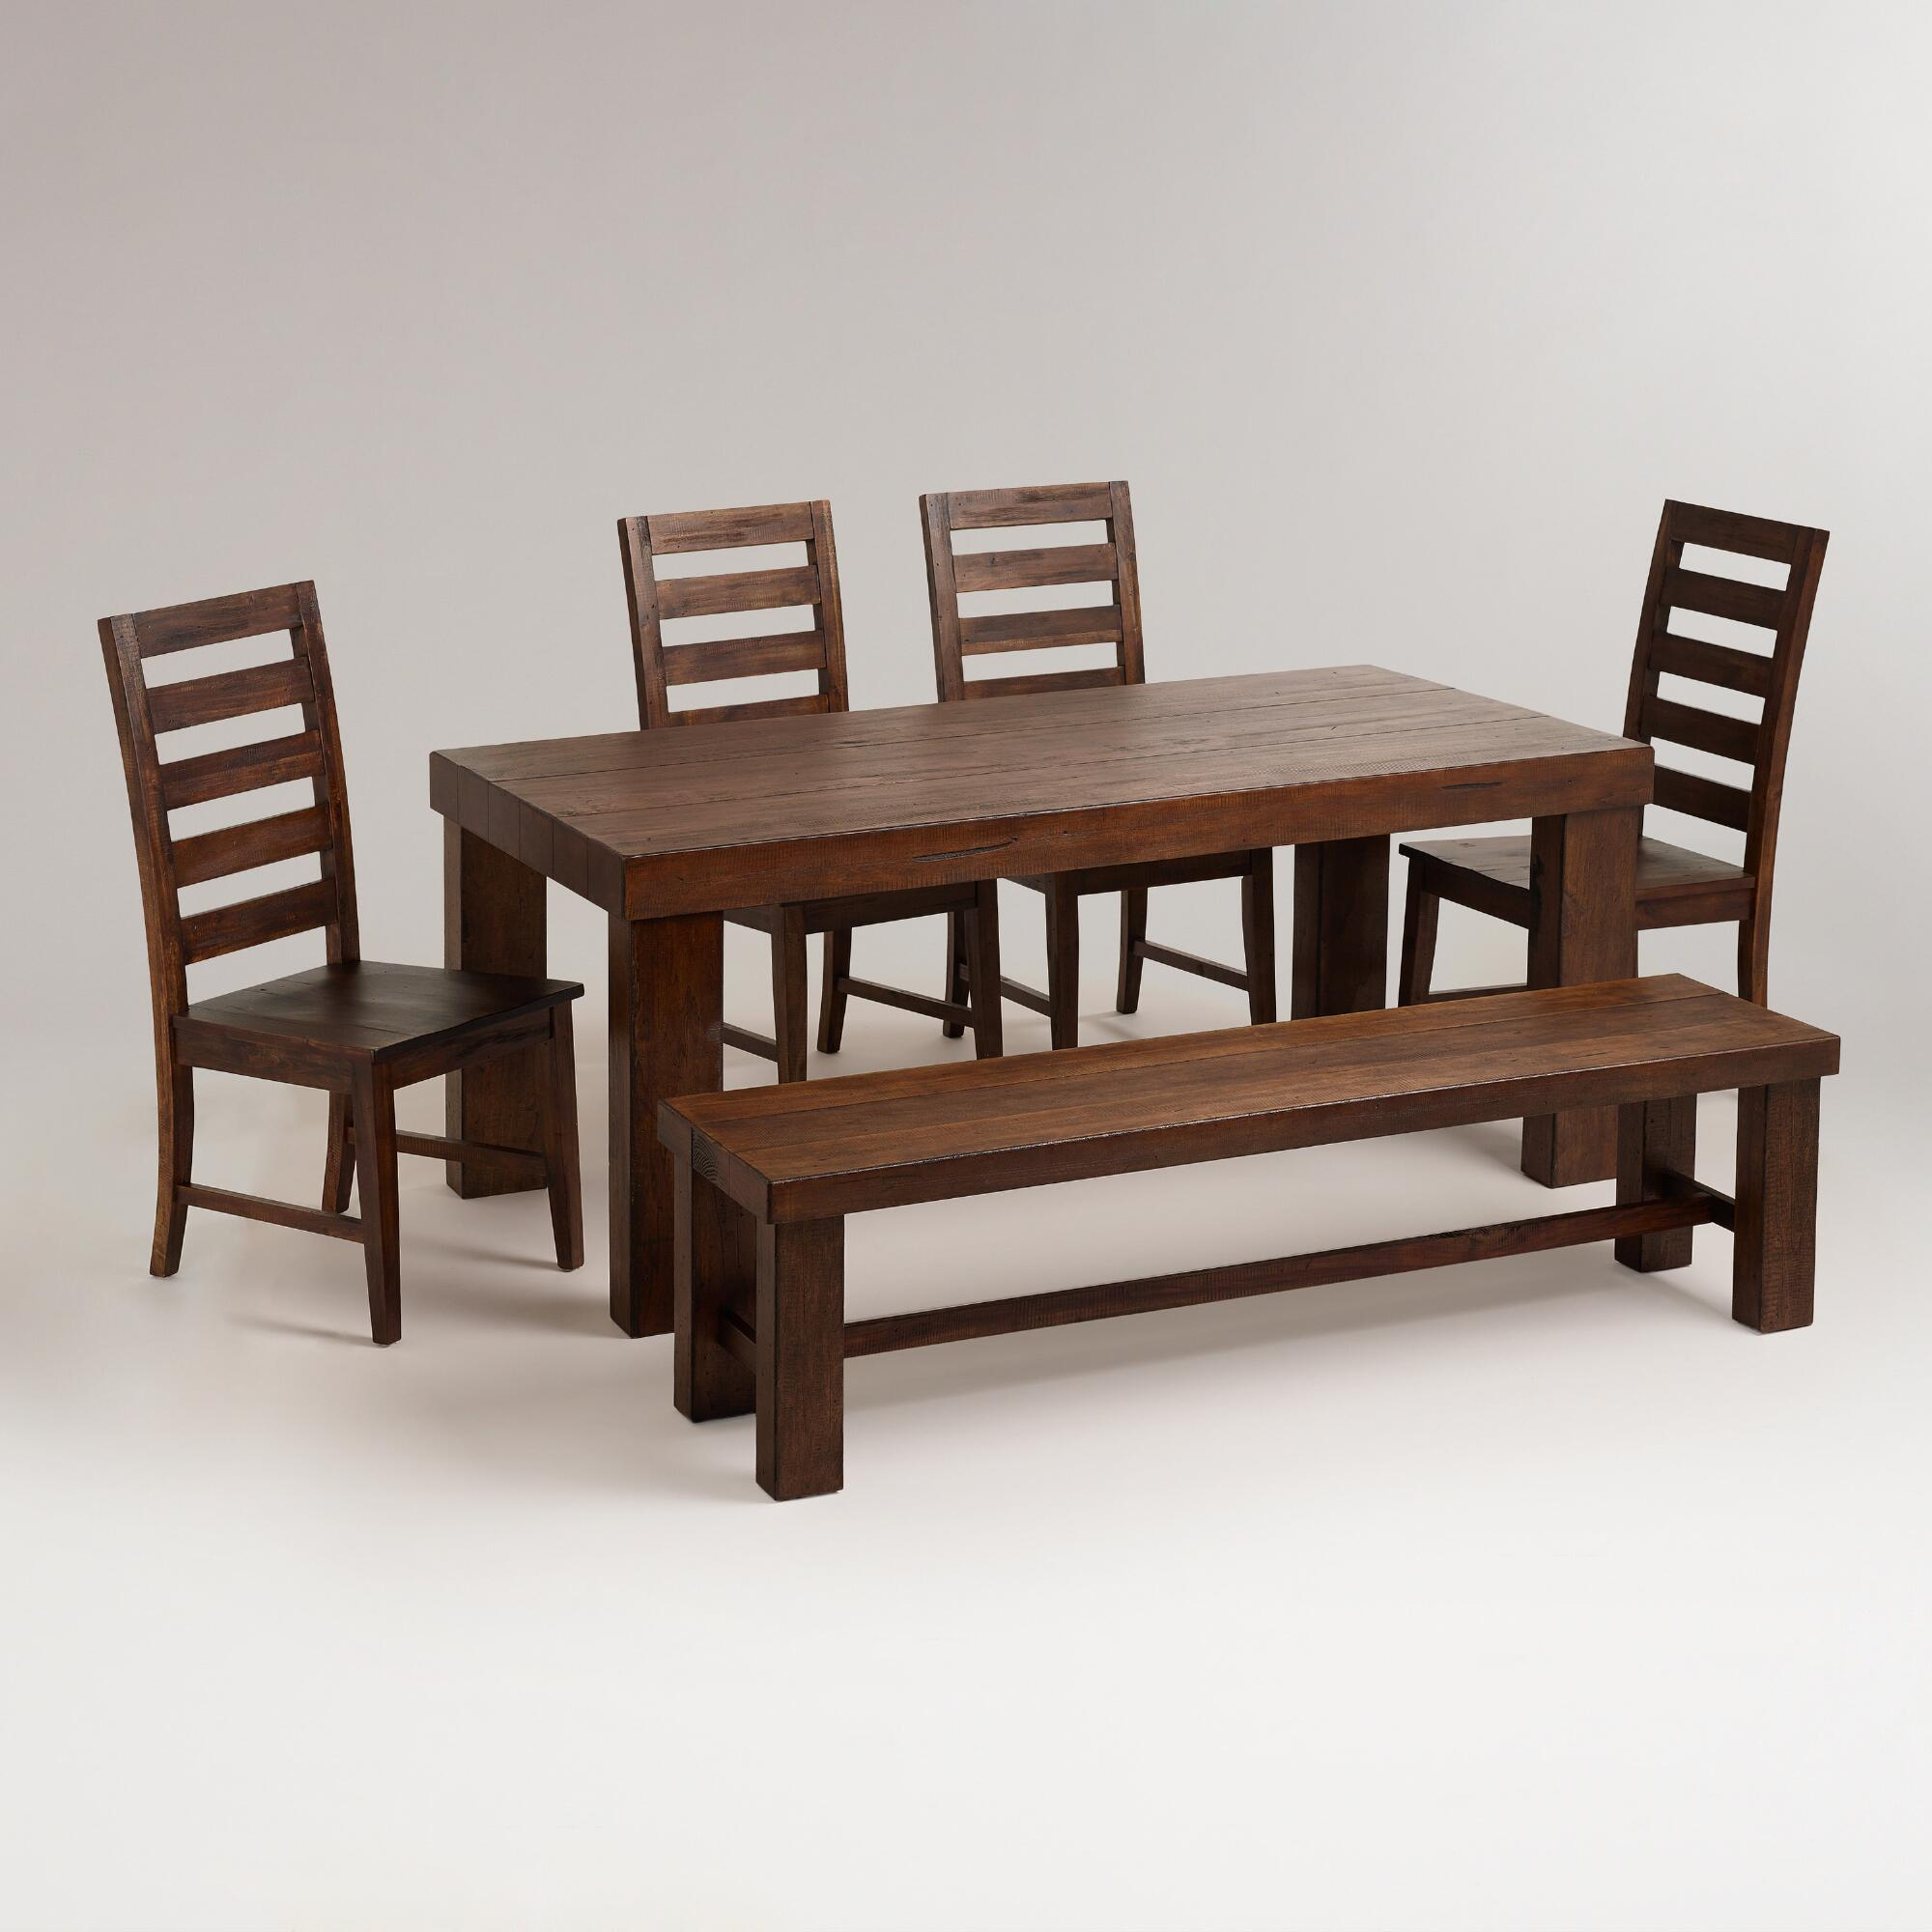 World Market Tables: Francine Dining Table, Bench And Chairs Furniture Set